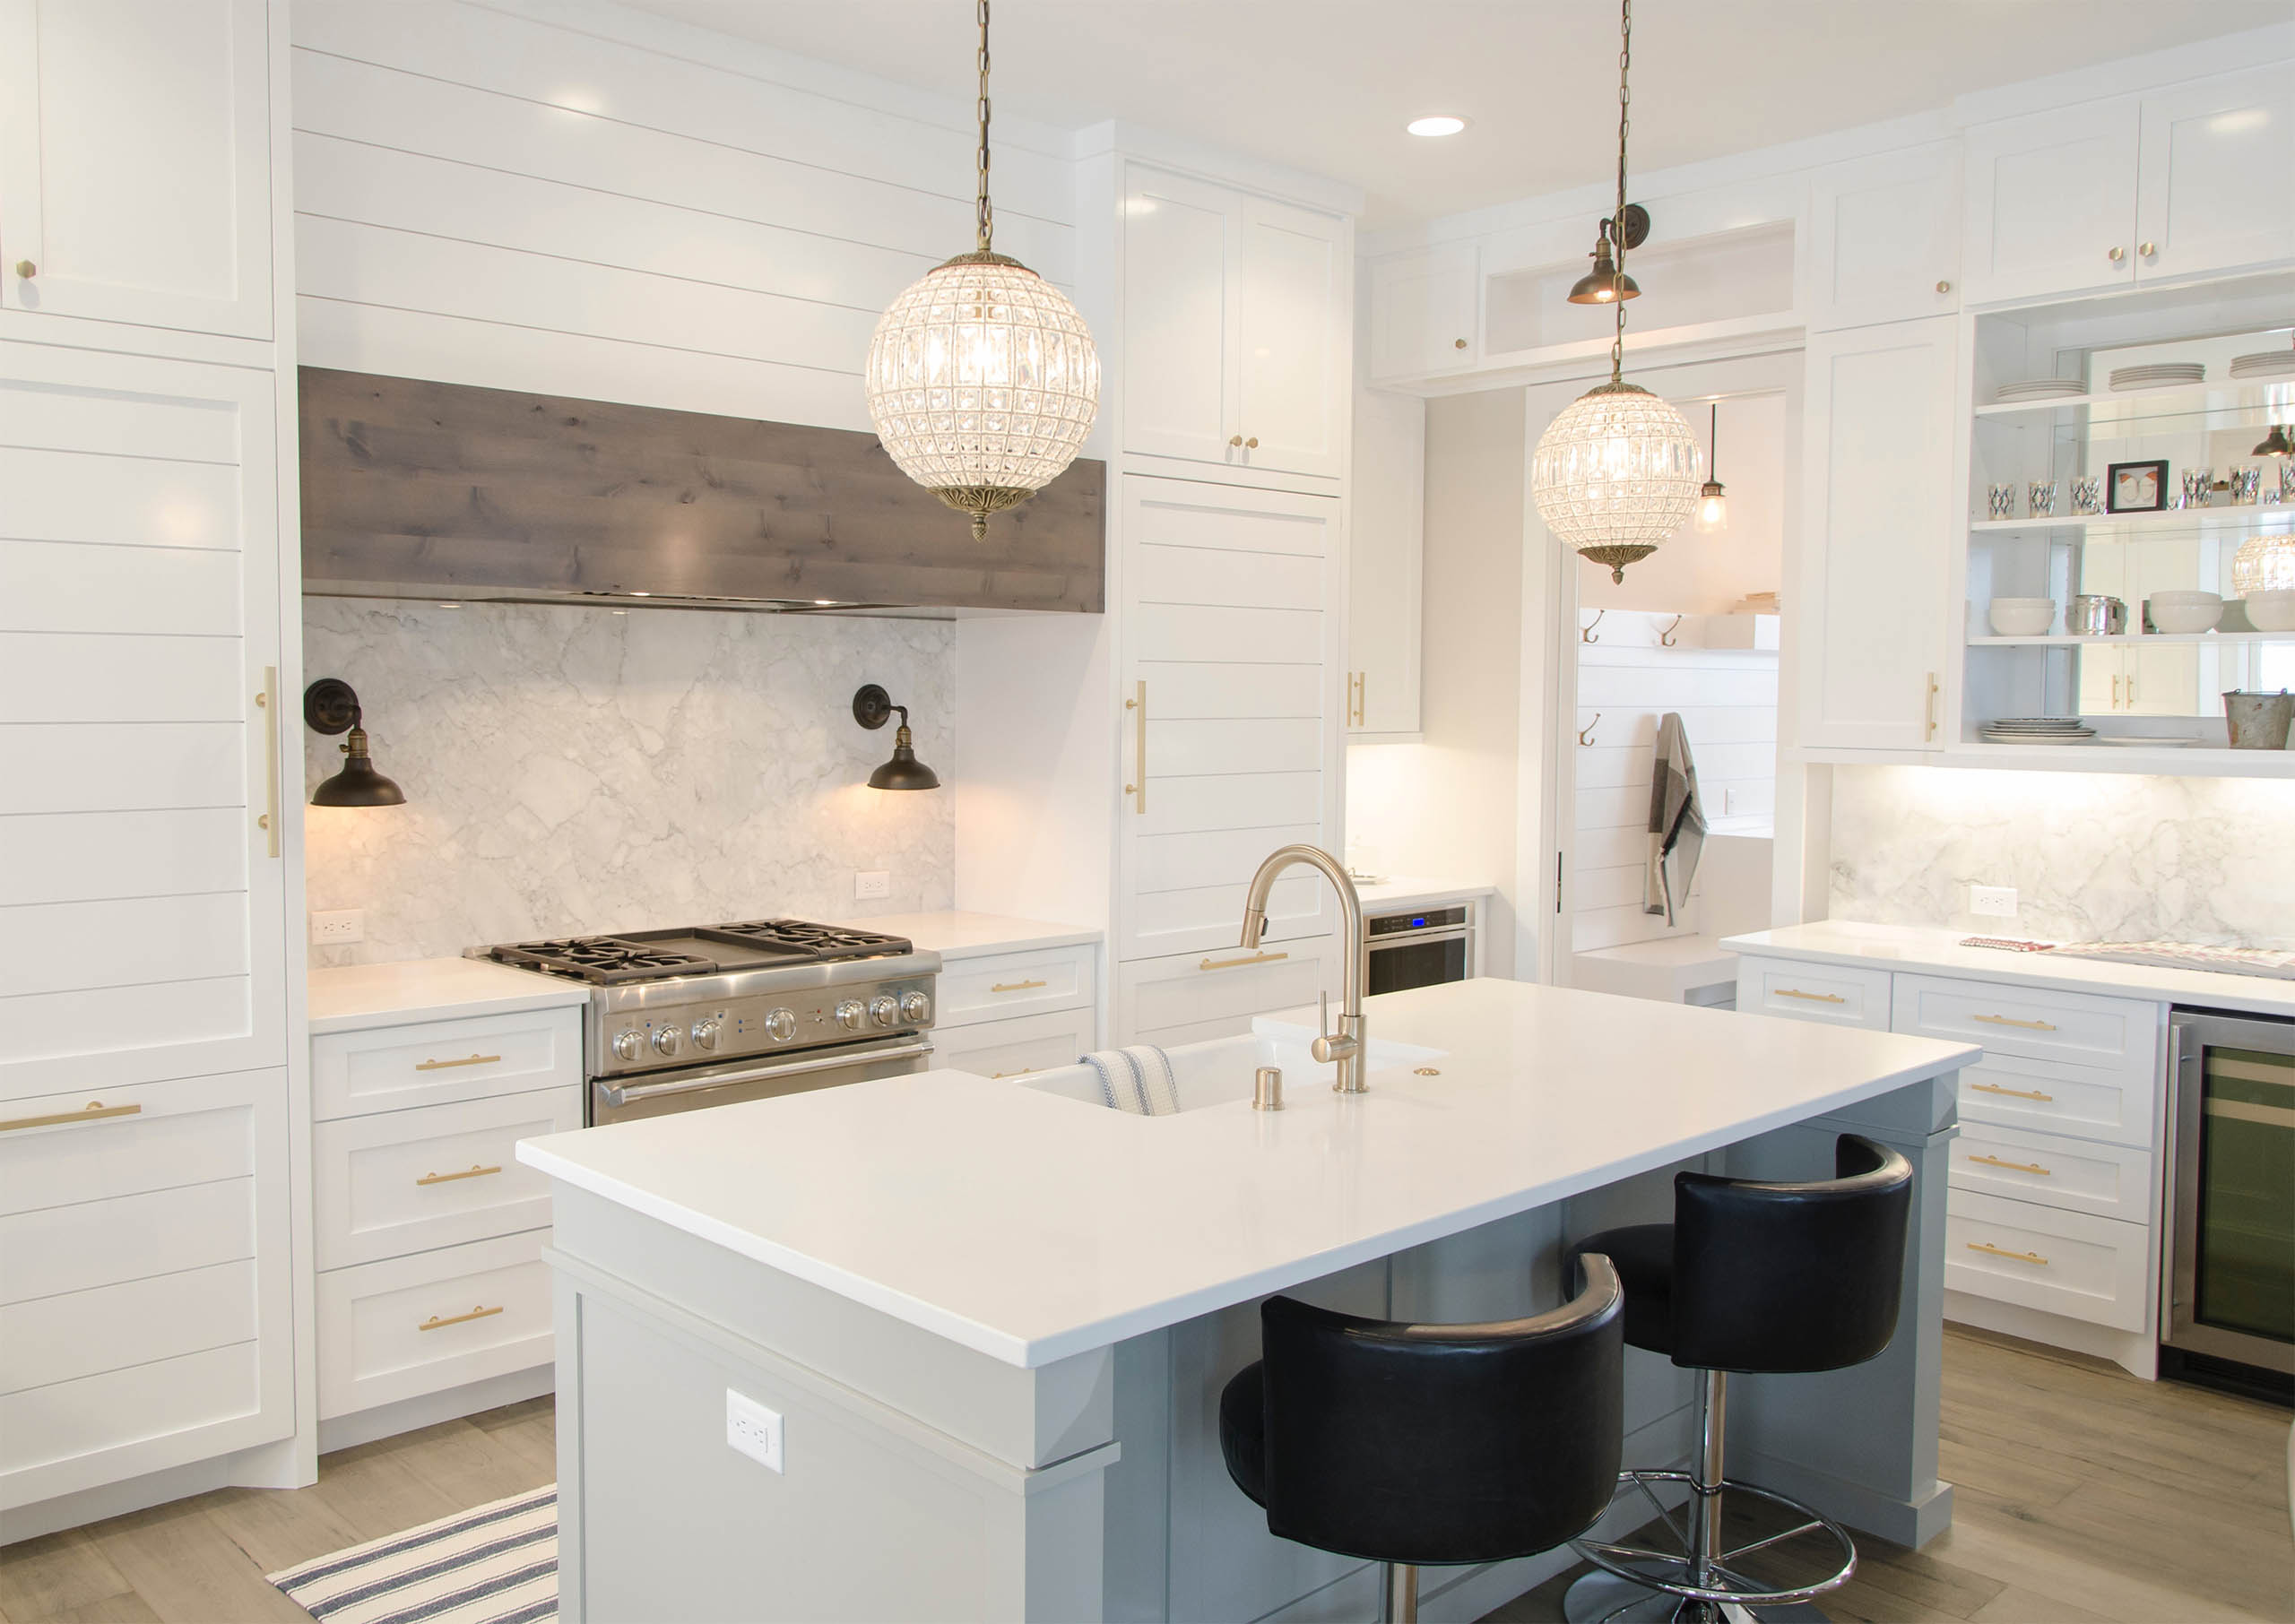 Luxury Kitchen with Marble Countertops and Globe Chandelier